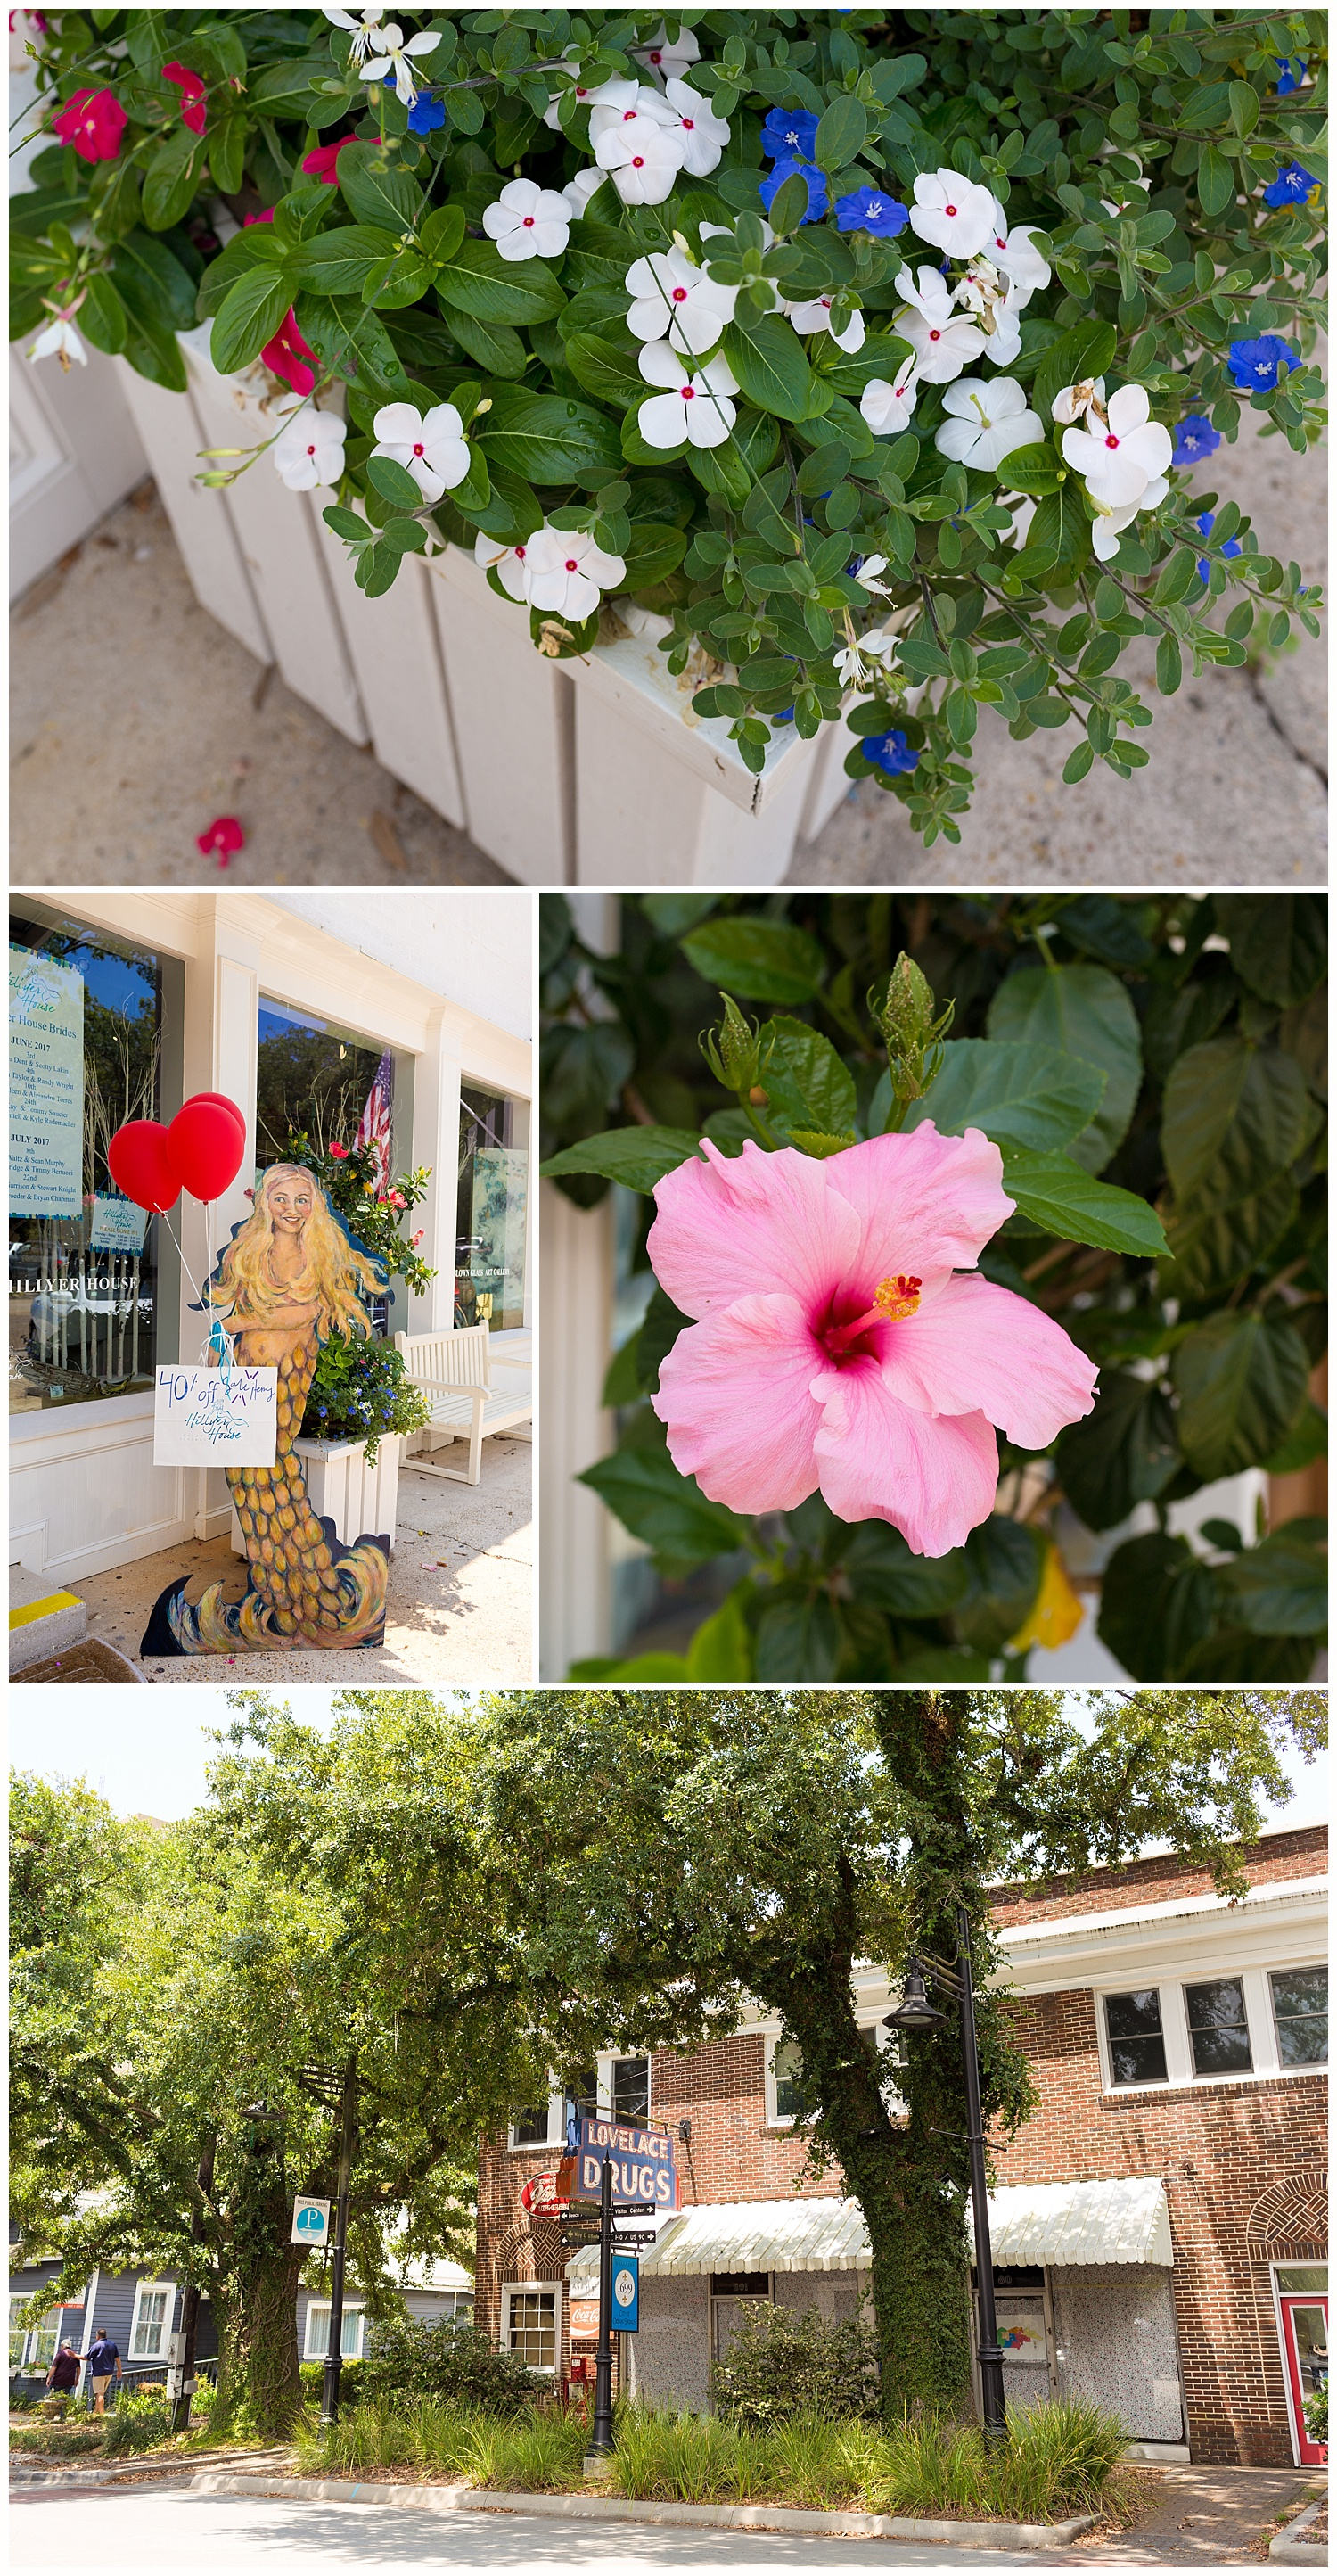 flower and storefronts in Ocean Springs, Mississippi